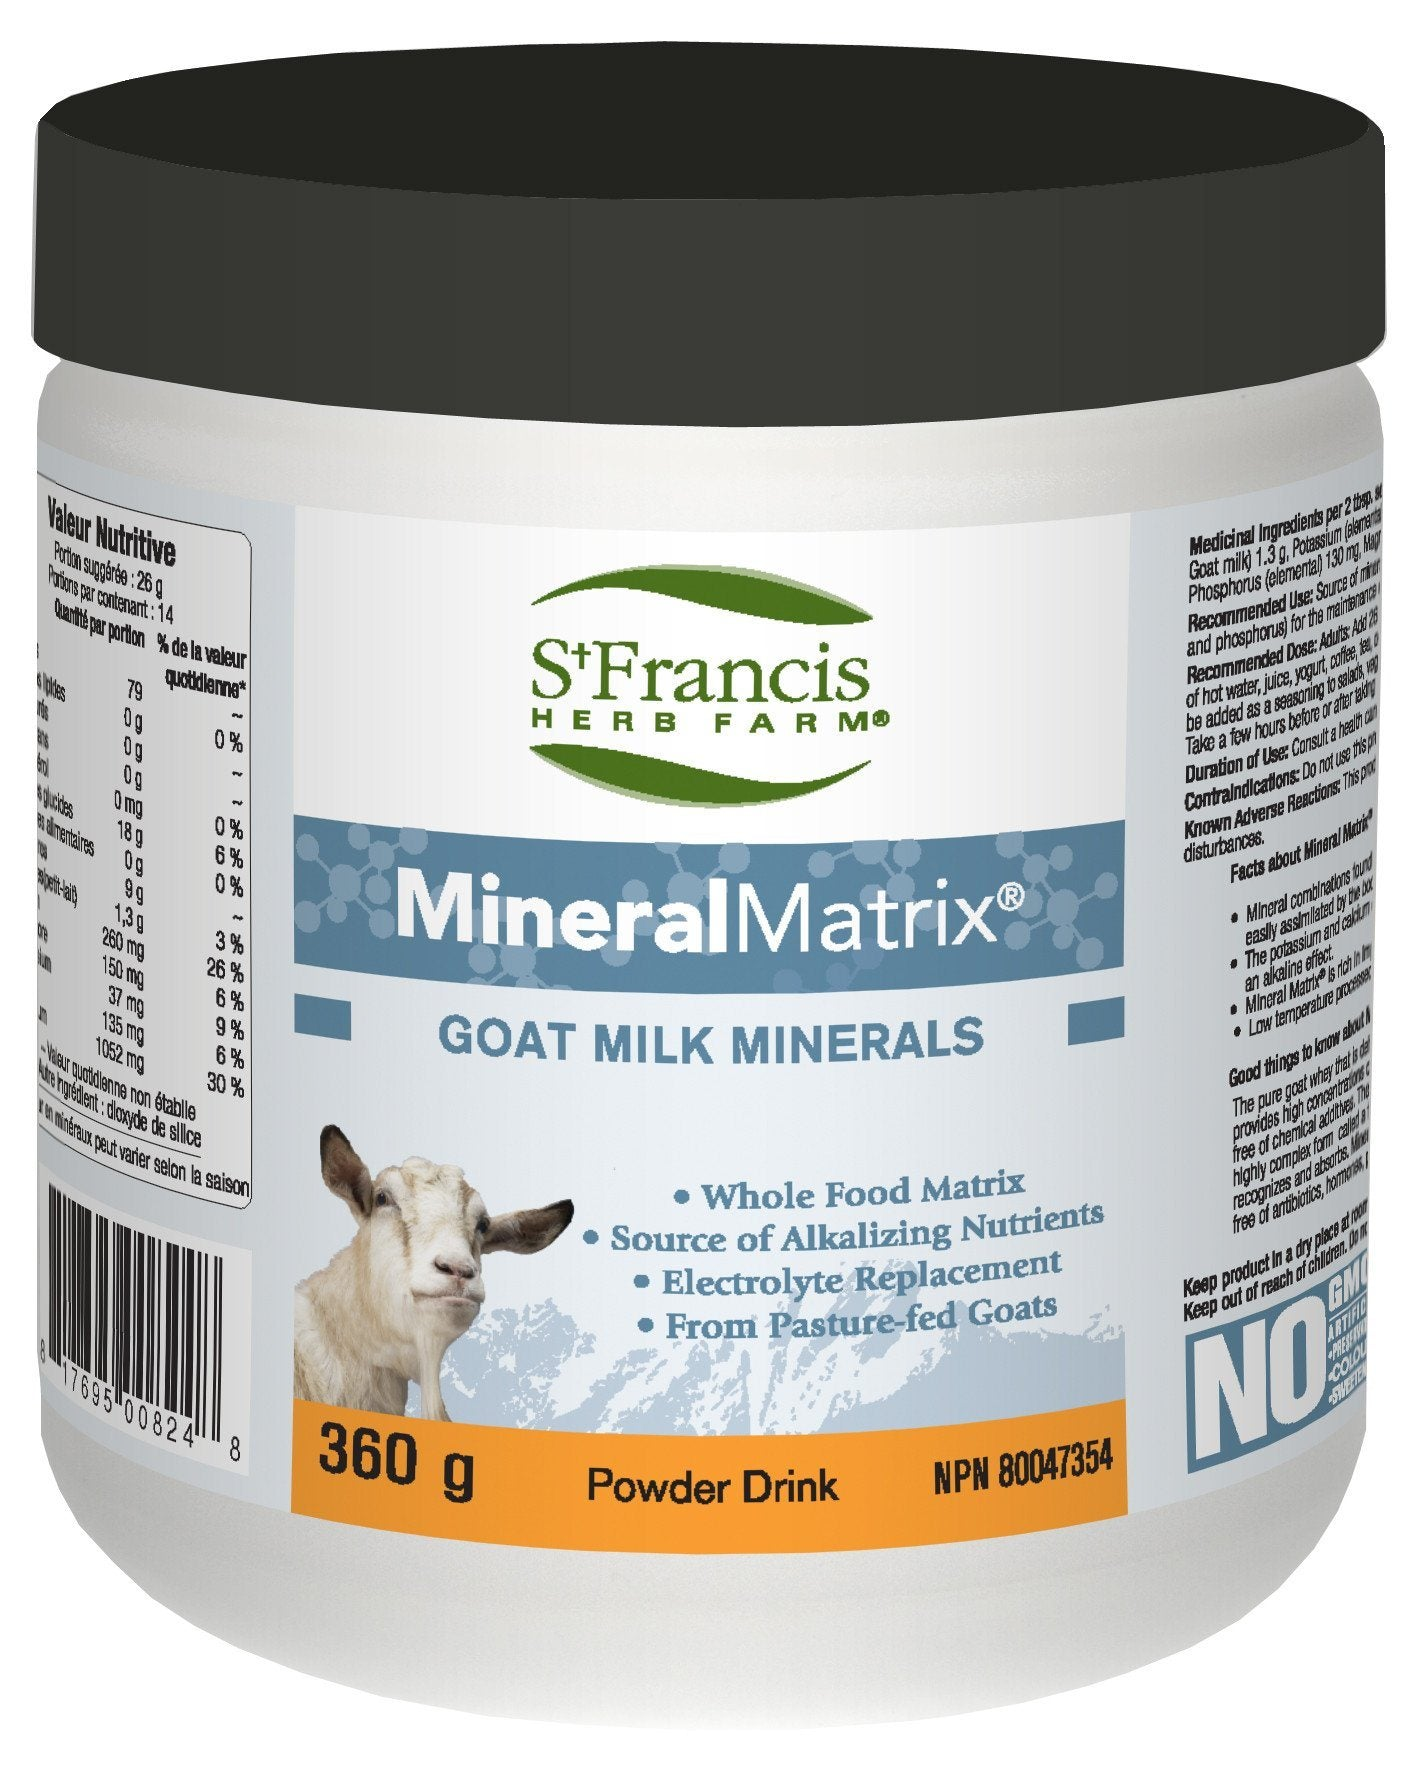 Supplements & Vitamins - St. Francis - Mineral Matrix, 360g